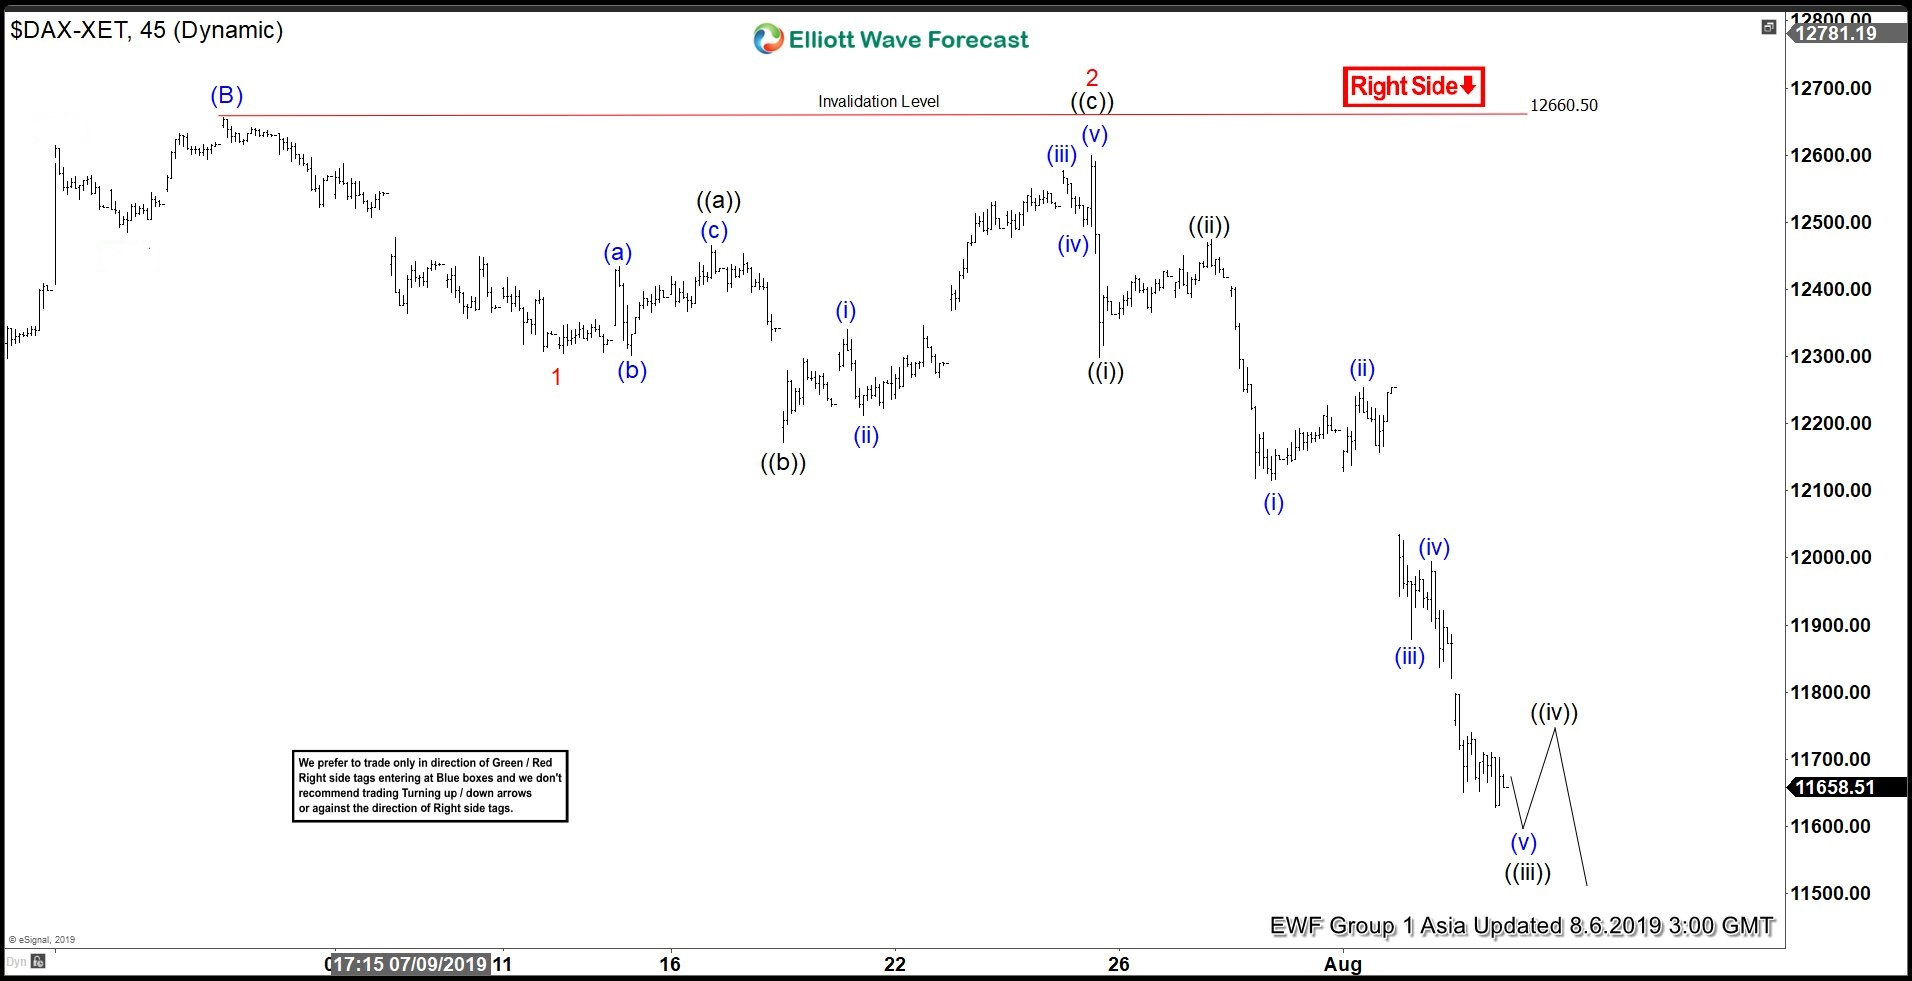 Elliottwave View: Decline in DAX a correction or a new bearish market?